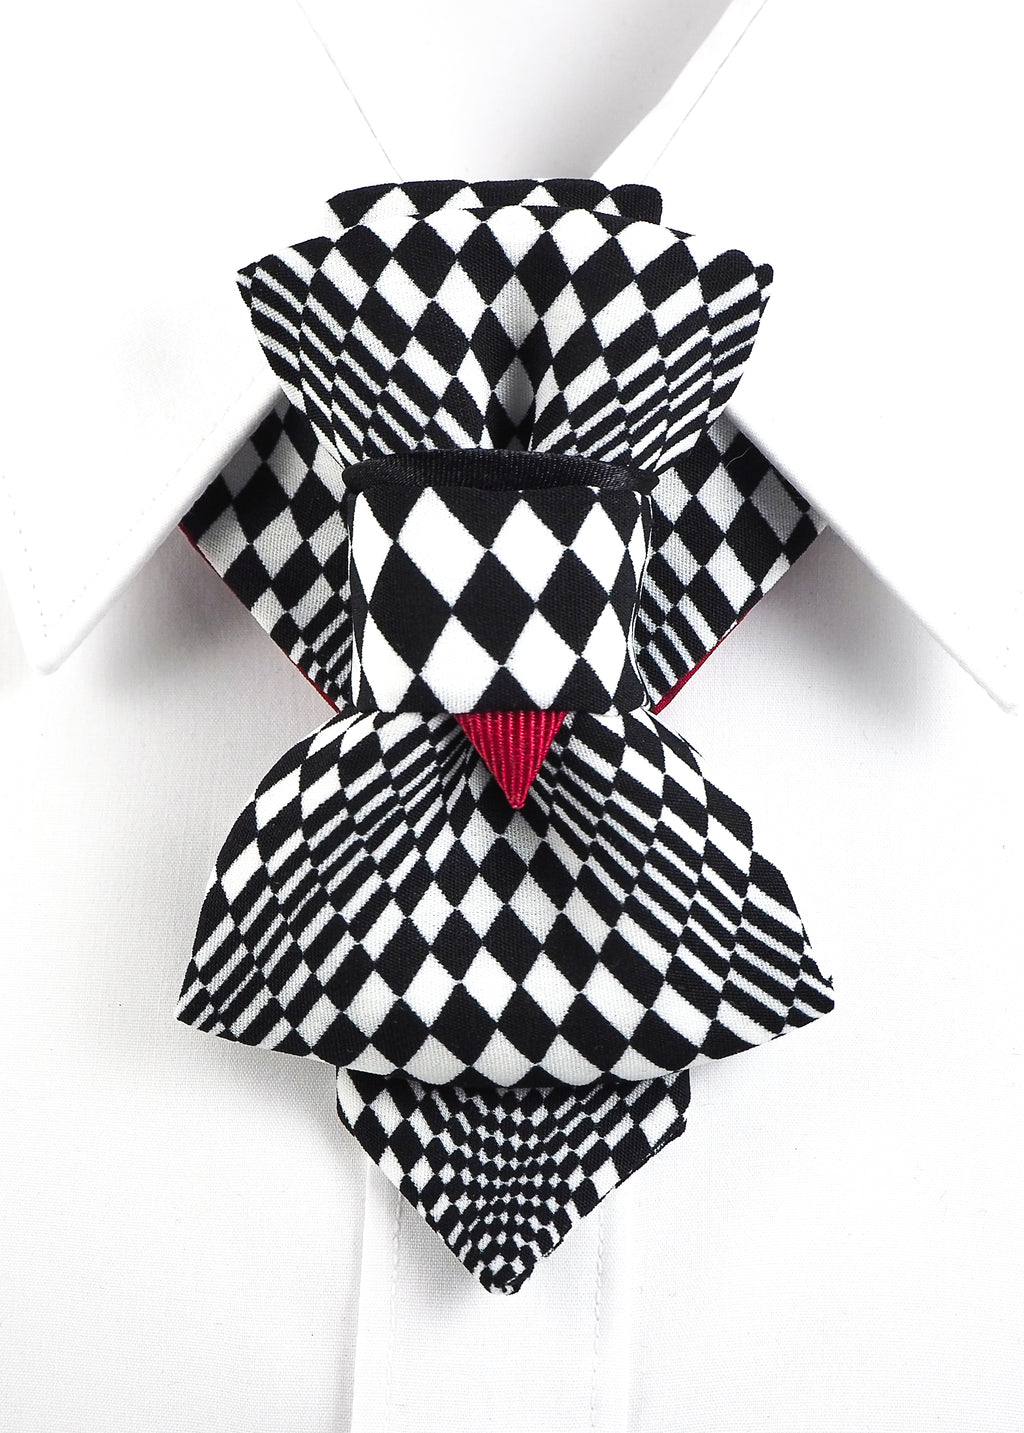 Hopper Bow Tie, Tie for wedding suite CHESS PLAYER